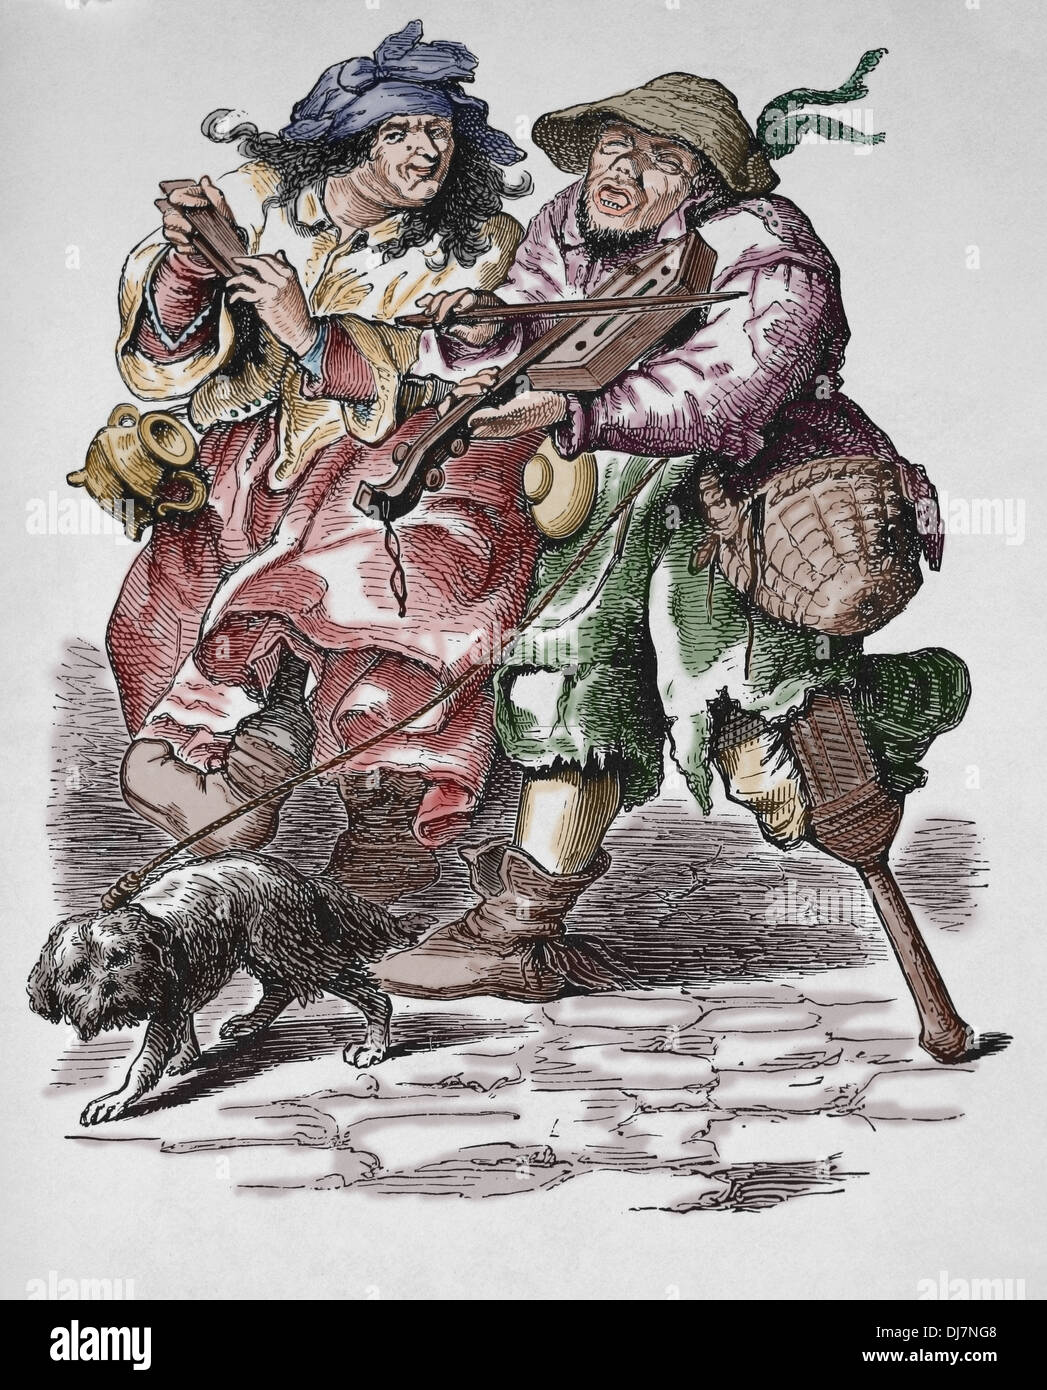 Begging. Musicians. Modern Age. 17th century. Colored engraving. - Stock Image